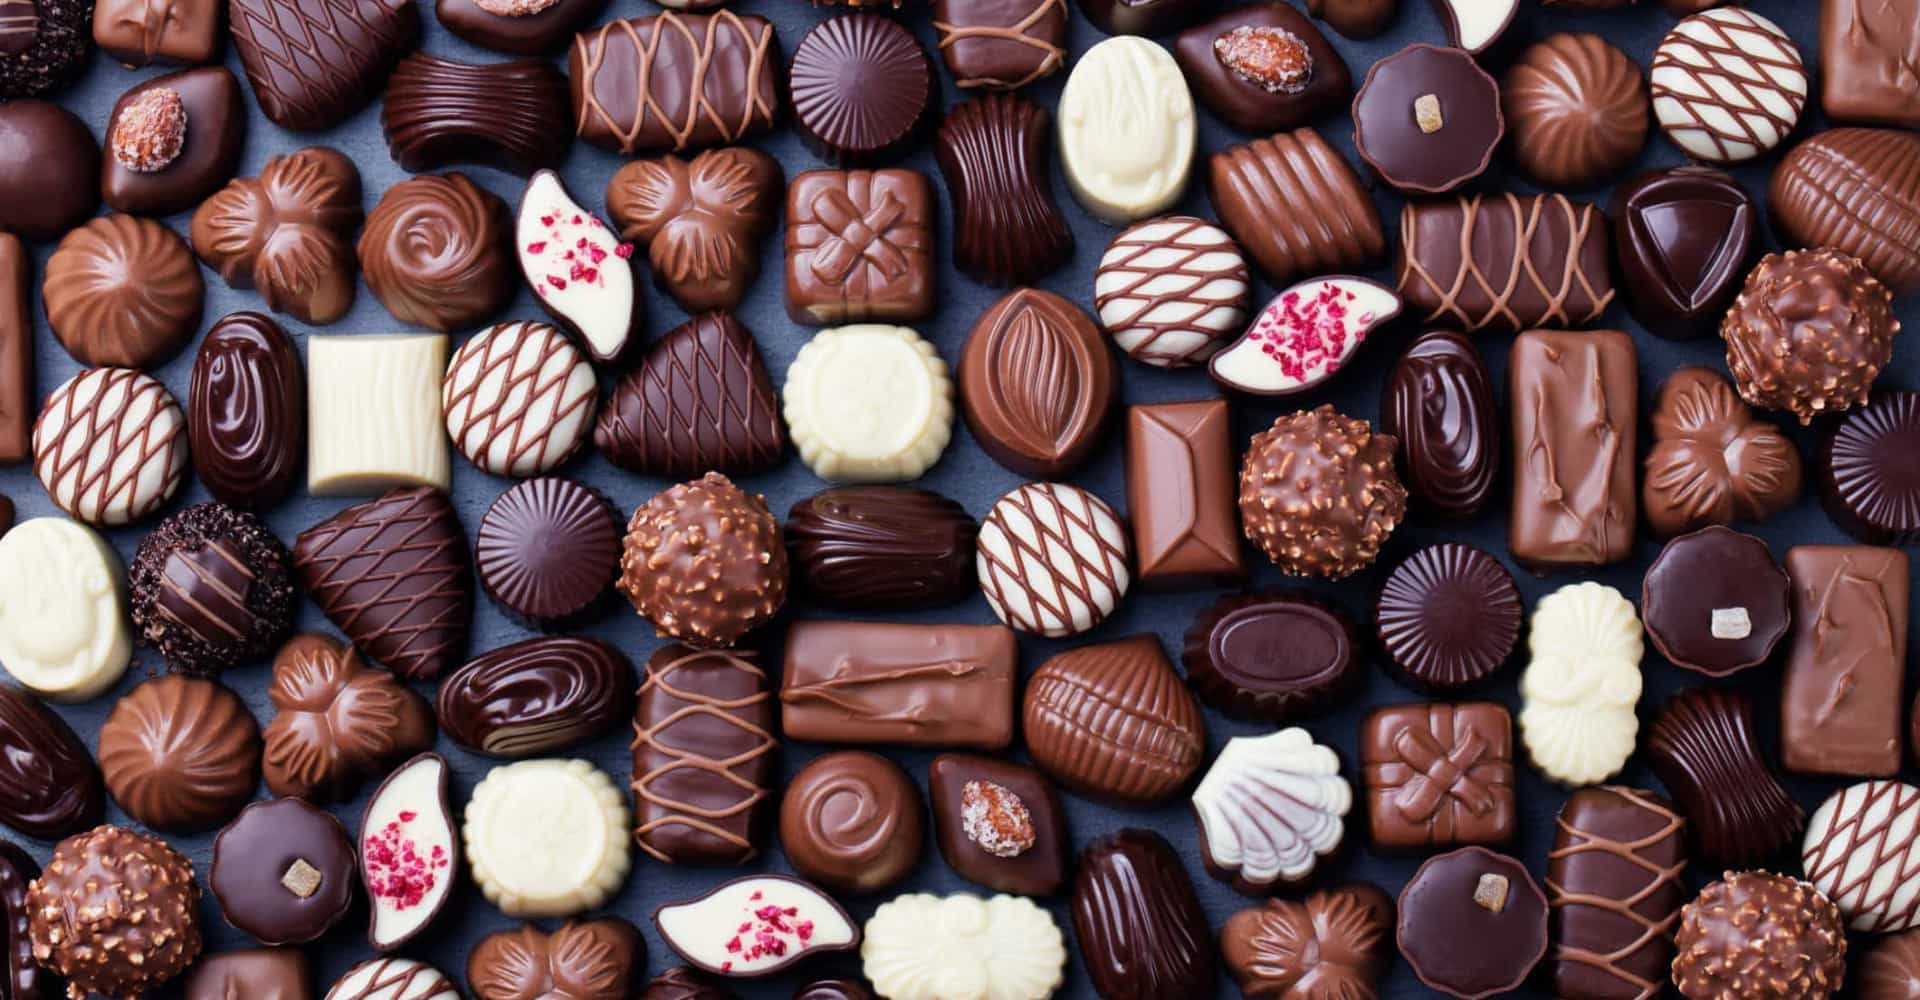 Chocolate: how good and bad is the world's favorite treat?